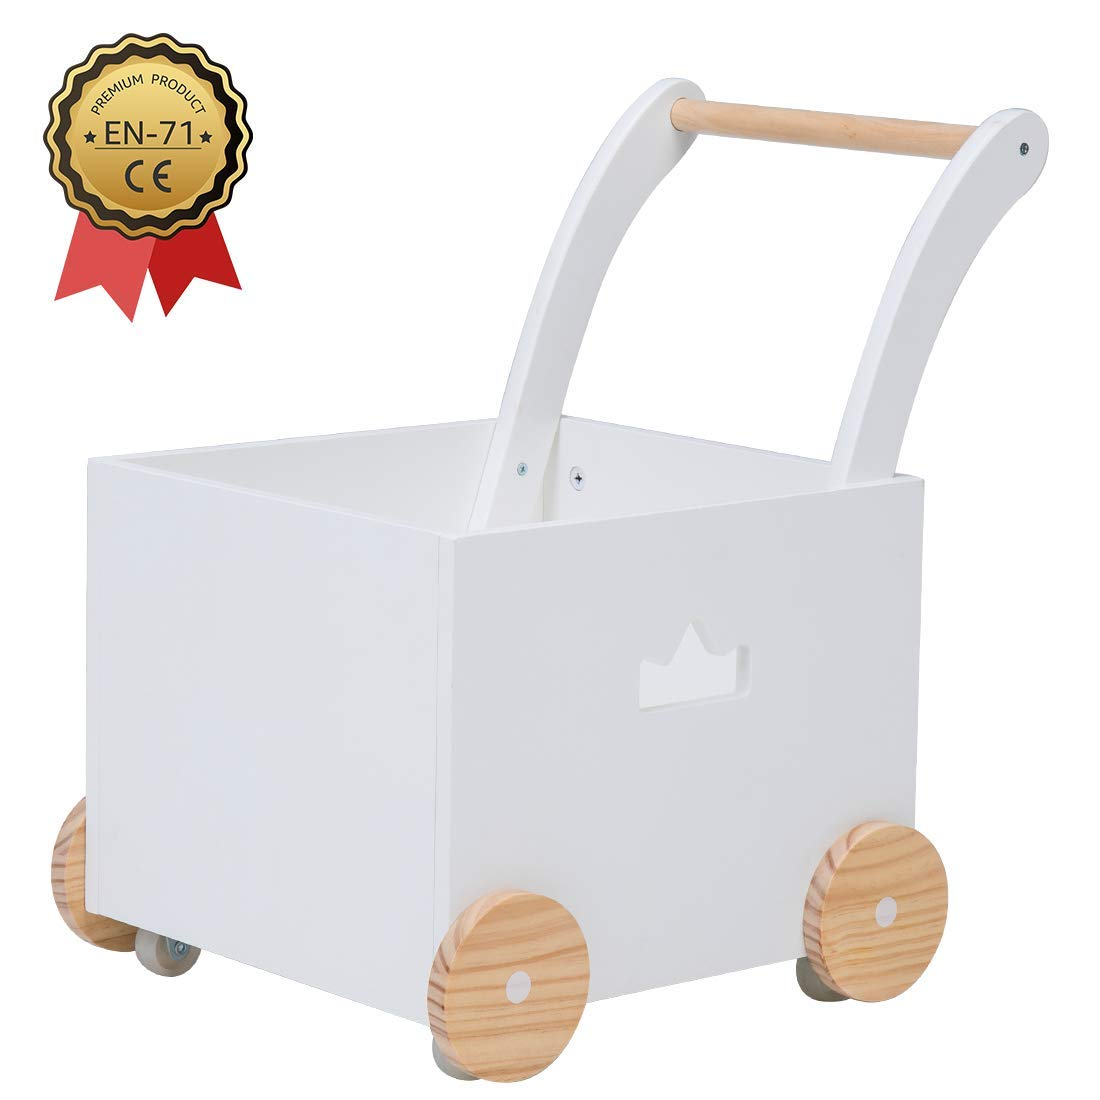 Crown Children 2-in-1 Baby Learning Walker Wooden Strollers with Blocks - Toddler Baby Push Walker Toys with Wheels for Girls Boys 1-3 Years Old, Wagon Toy Walkers Sturdy Construction (Square)